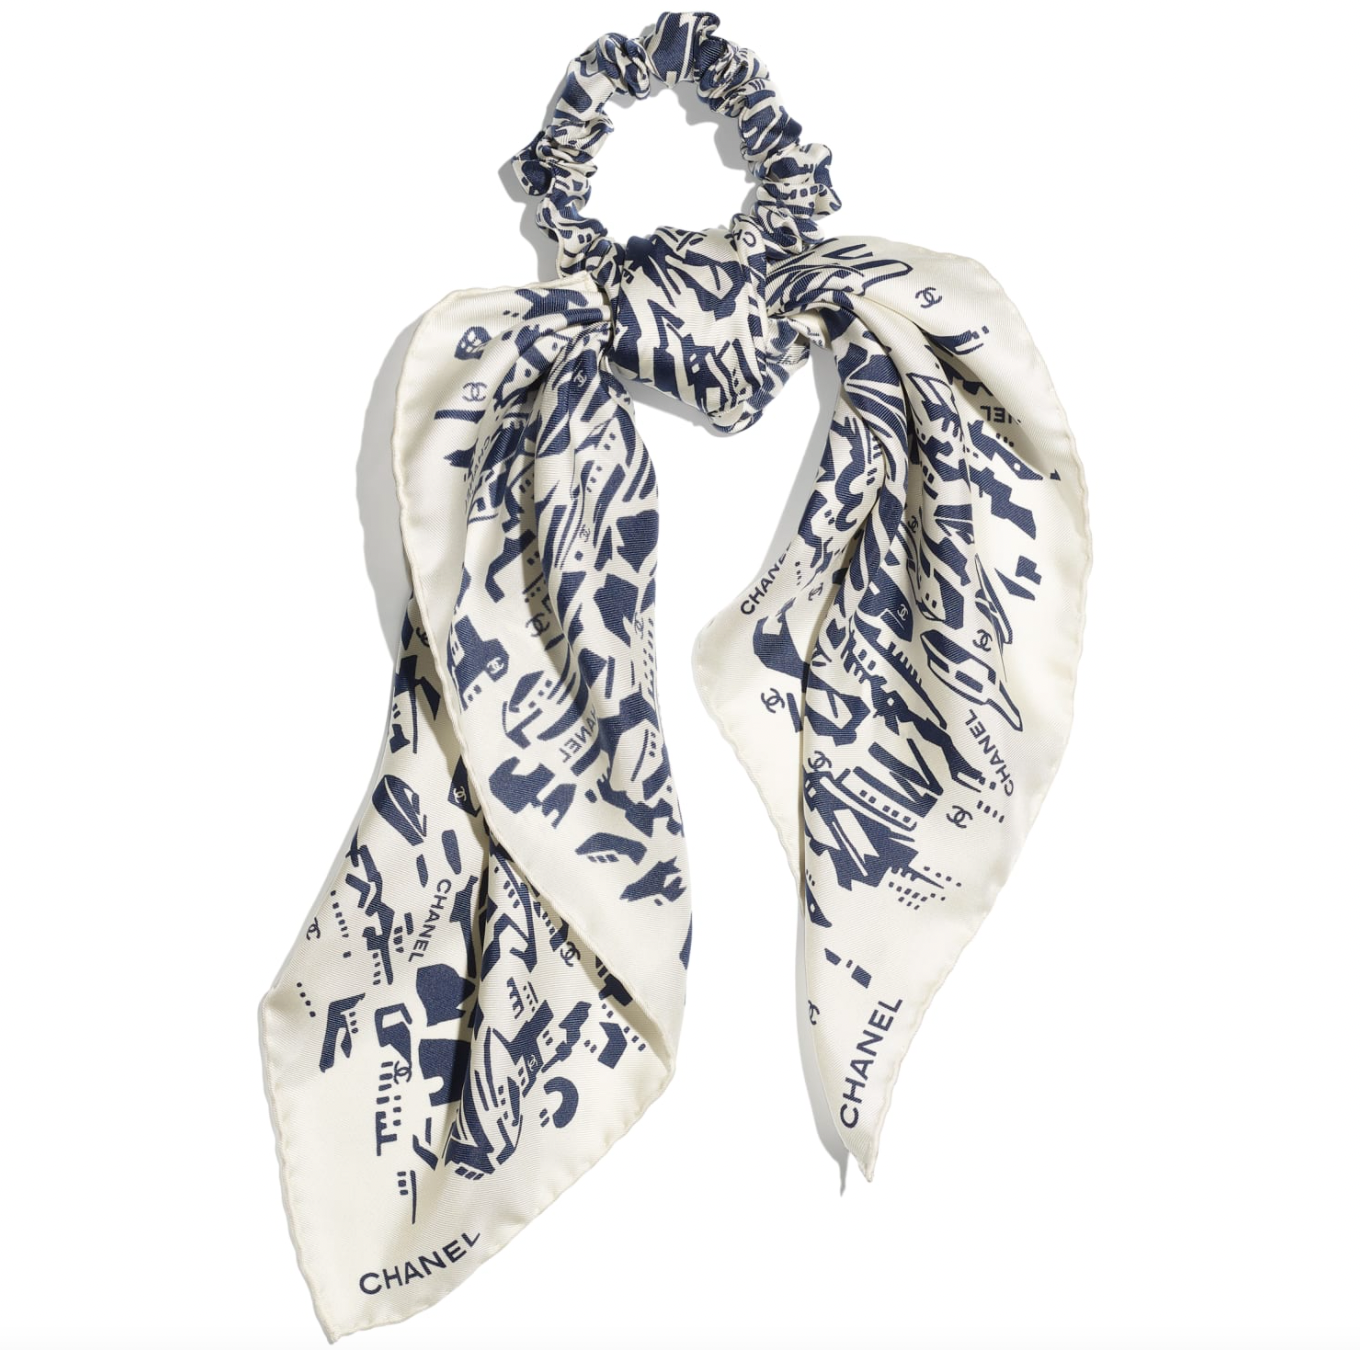 heart evangelista chanel silk twill scarf hair accessory price